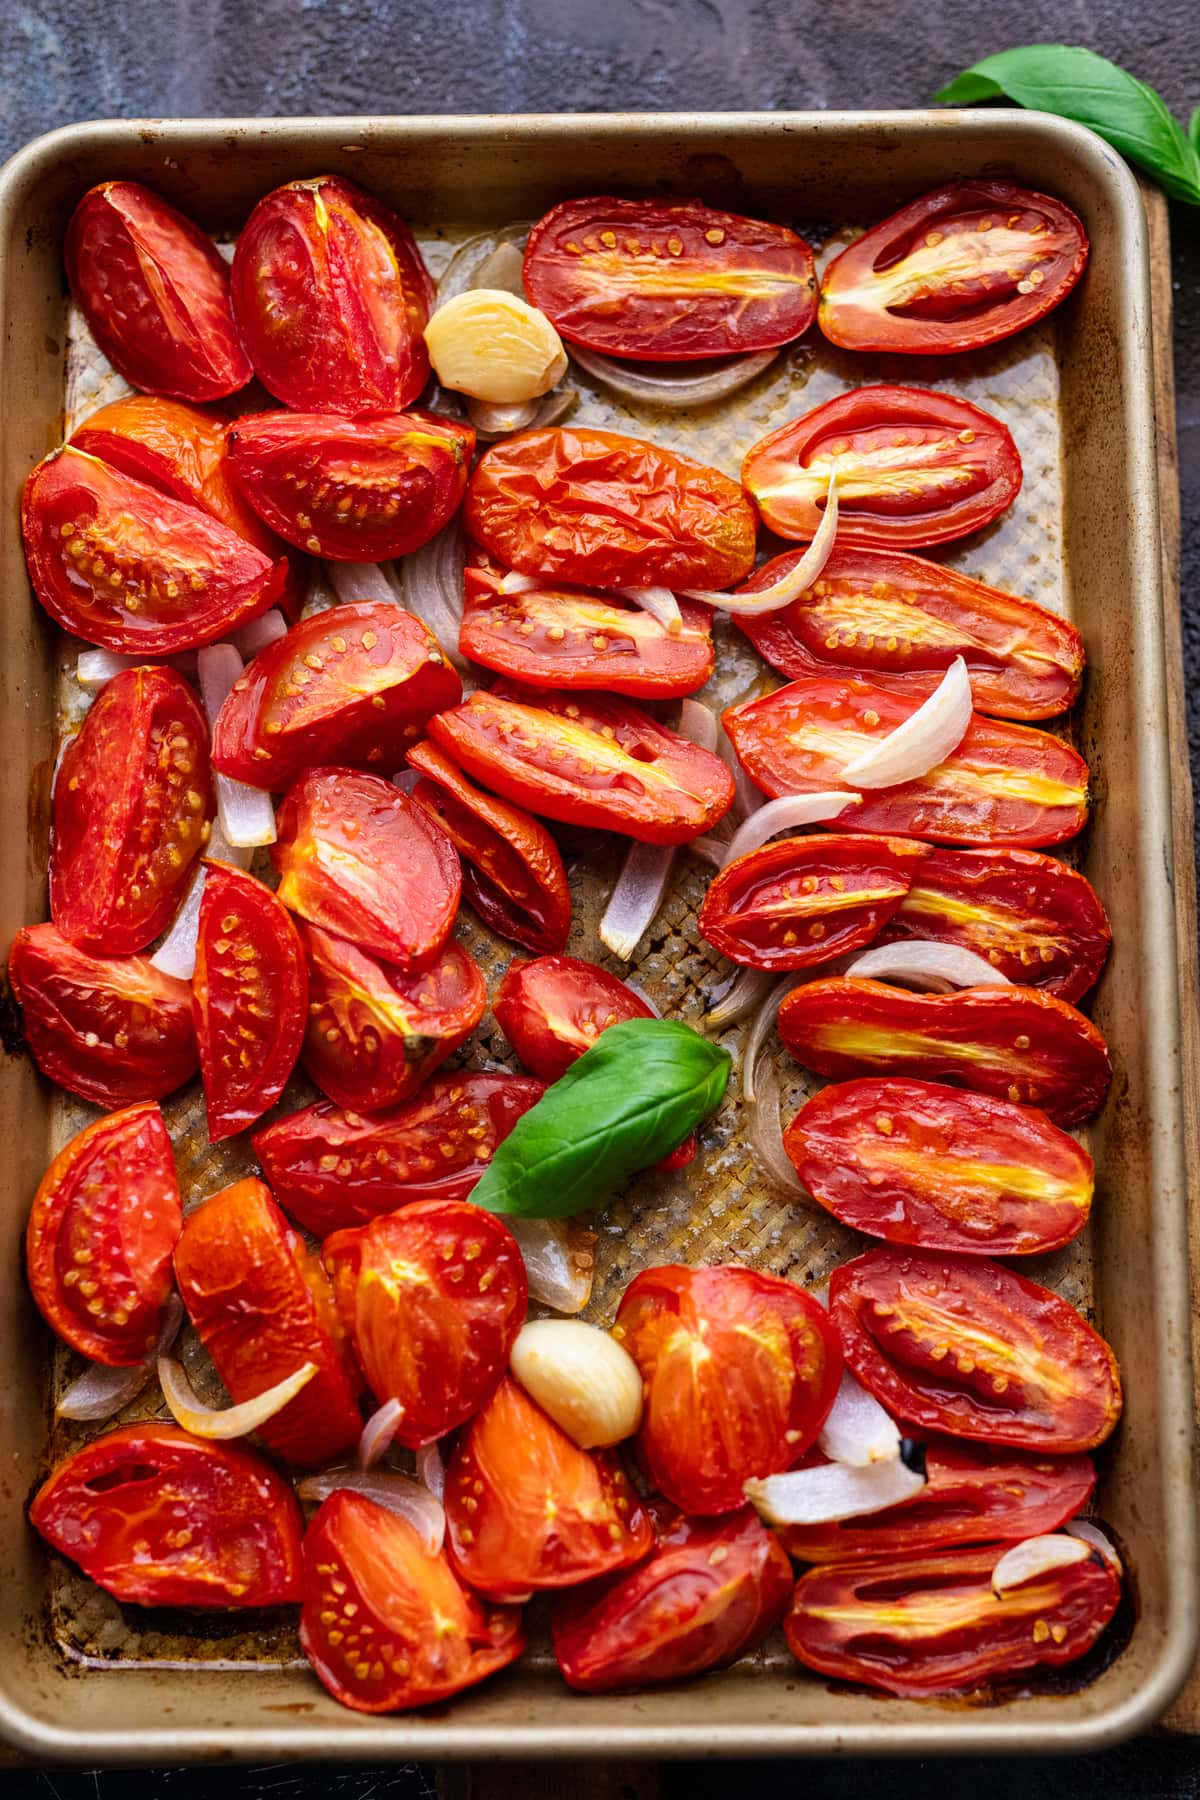 A sheet pan with roasted halved tomatoes and onion slices on it.